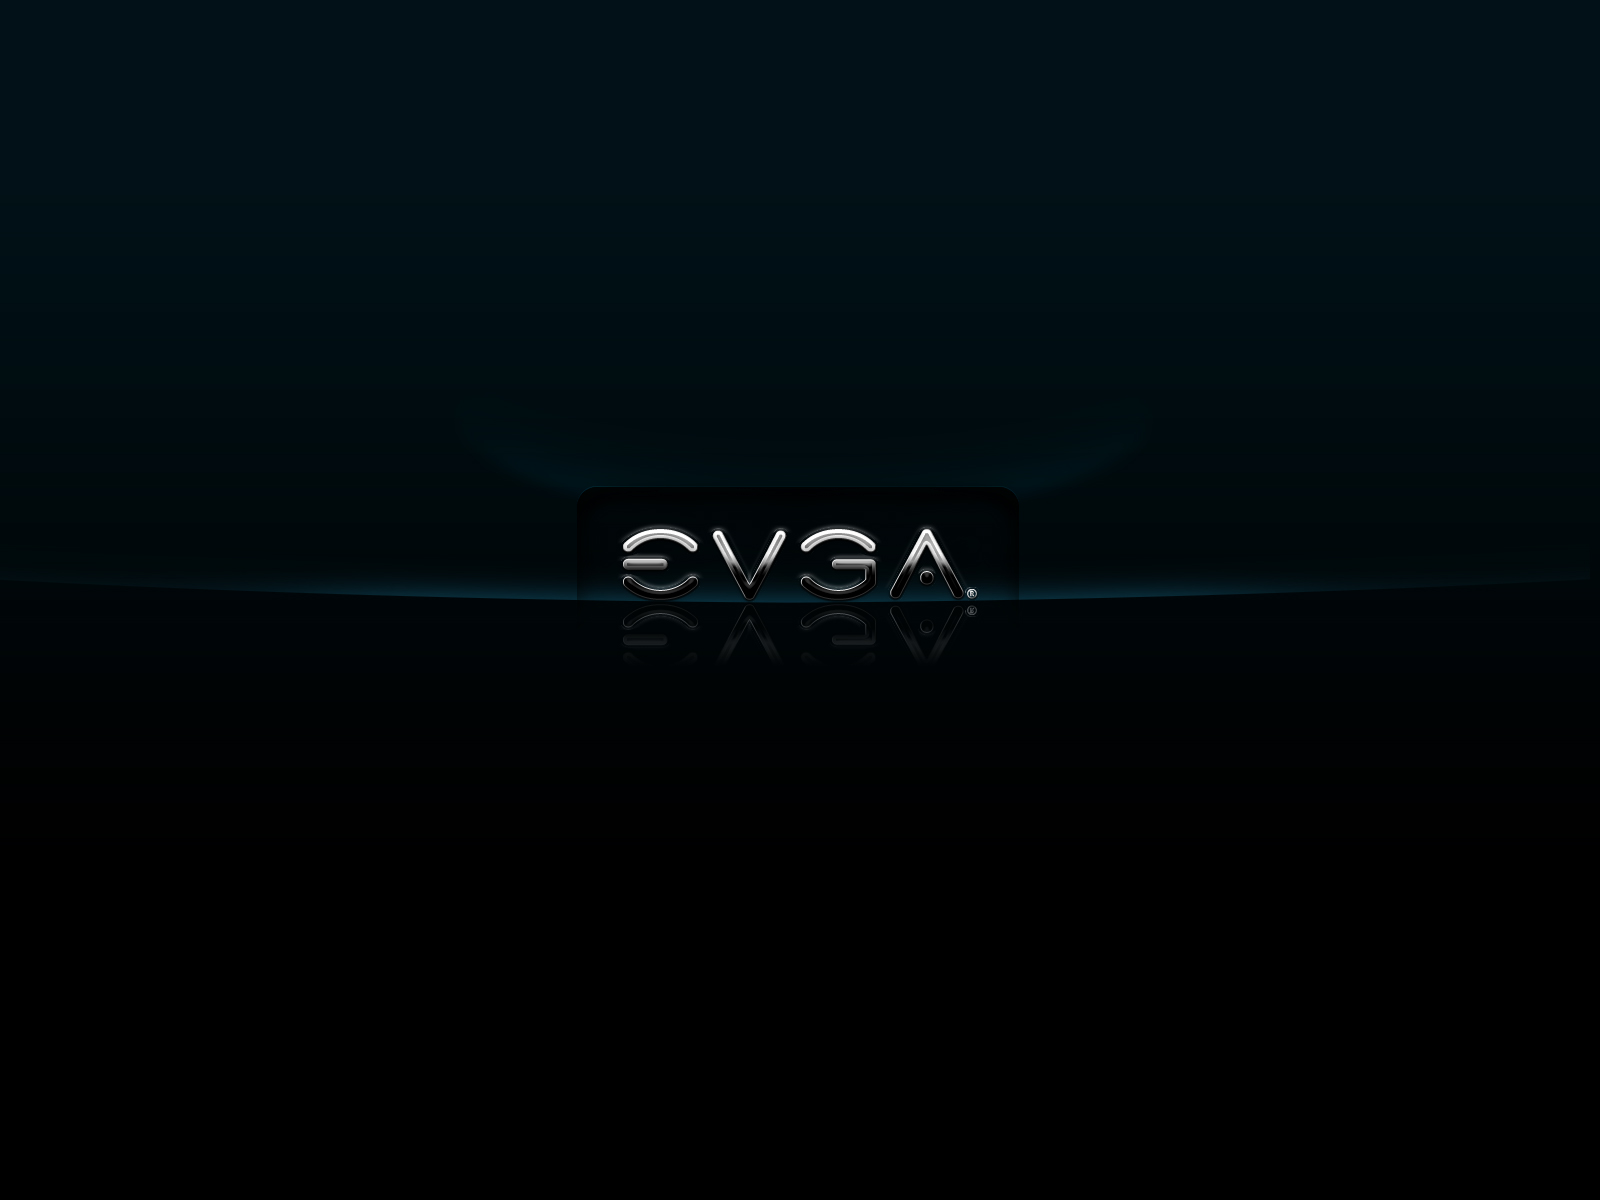 Evga Wallpapers Android - Wickedsa com